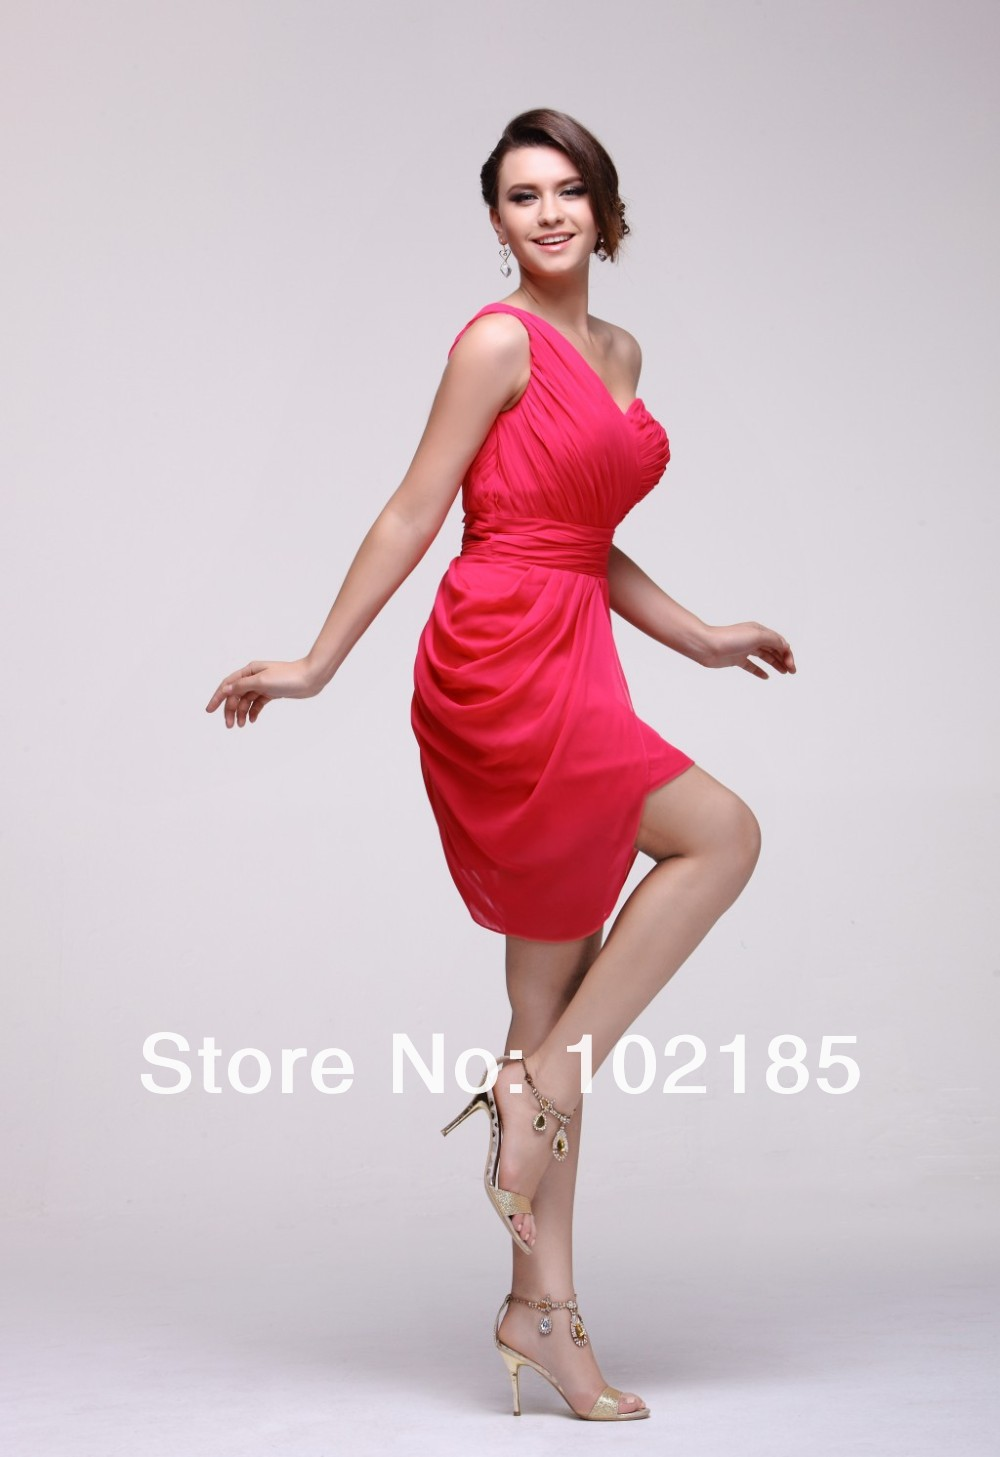 2013 New Arrival Cheap One Shoulder Knee-Length Ruffle Red Chiffon CocktailParty Dresses (1).jpg